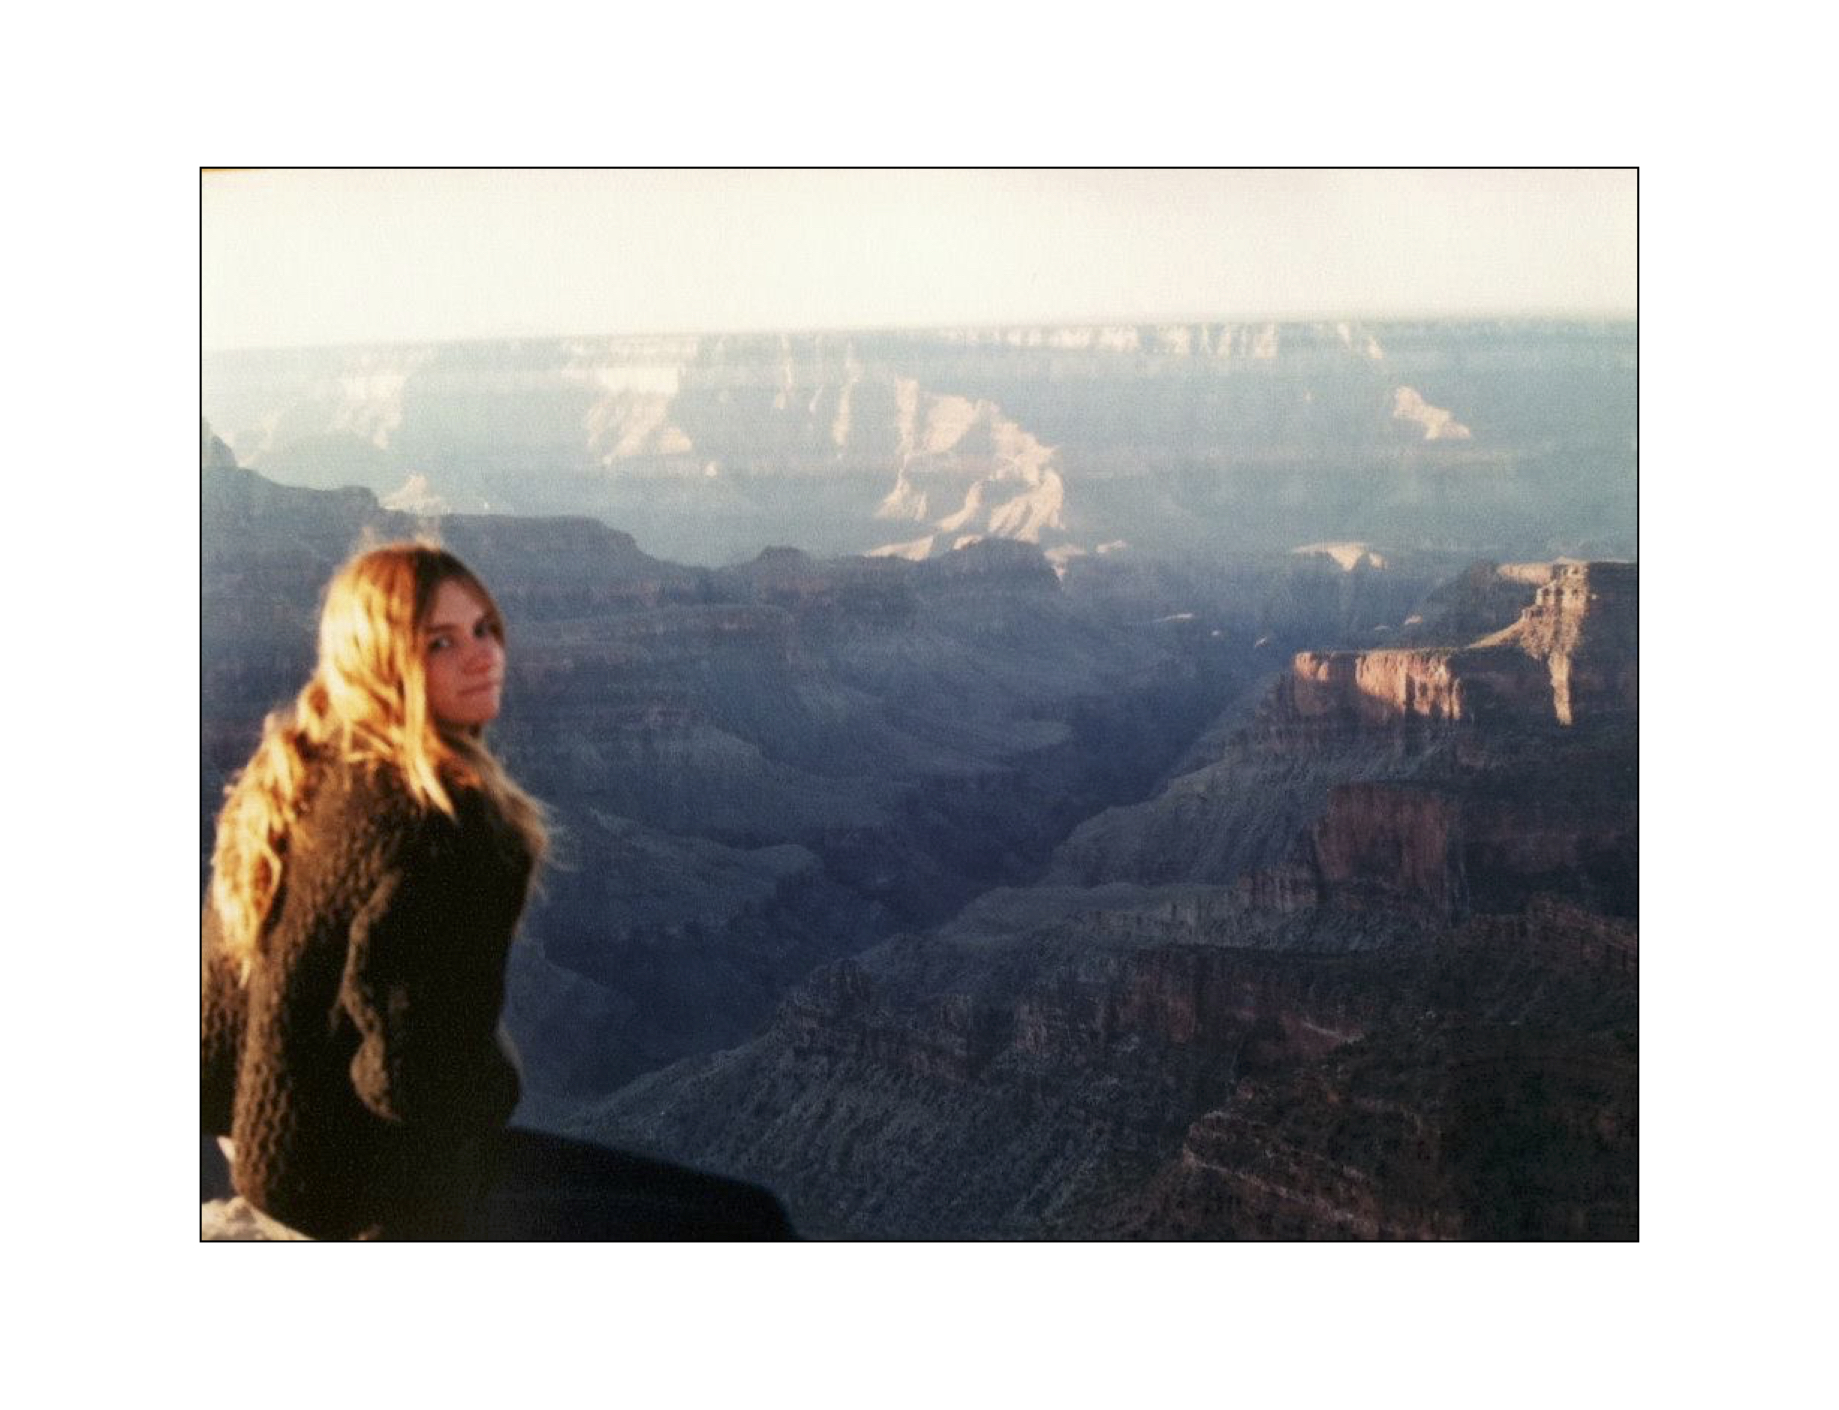 I don't have many photos from that time. This is sad, 19 year old me at the grand canyon, helping my friend move cross country.